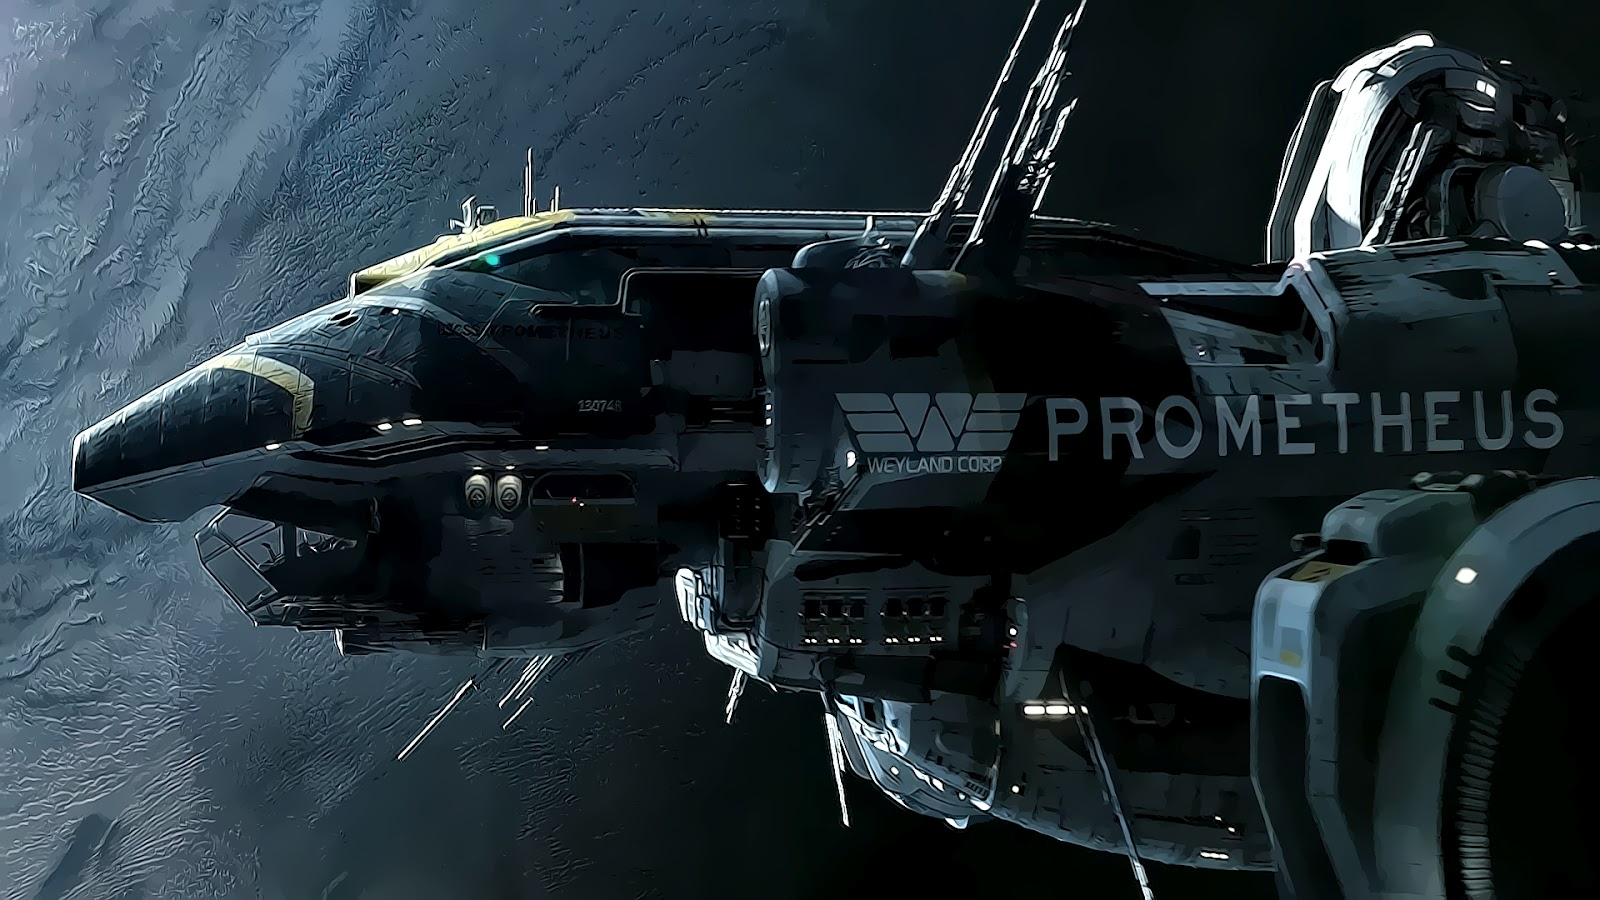 http://1.bp.blogspot.com/-V9jQTbNs9XU/UGb5LIAiBvI/AAAAAAAACZY/LcFZq6_jnVs/s1600/prometheus-spaceship-movie-ridley-scott-alien-science-fiction.jpg